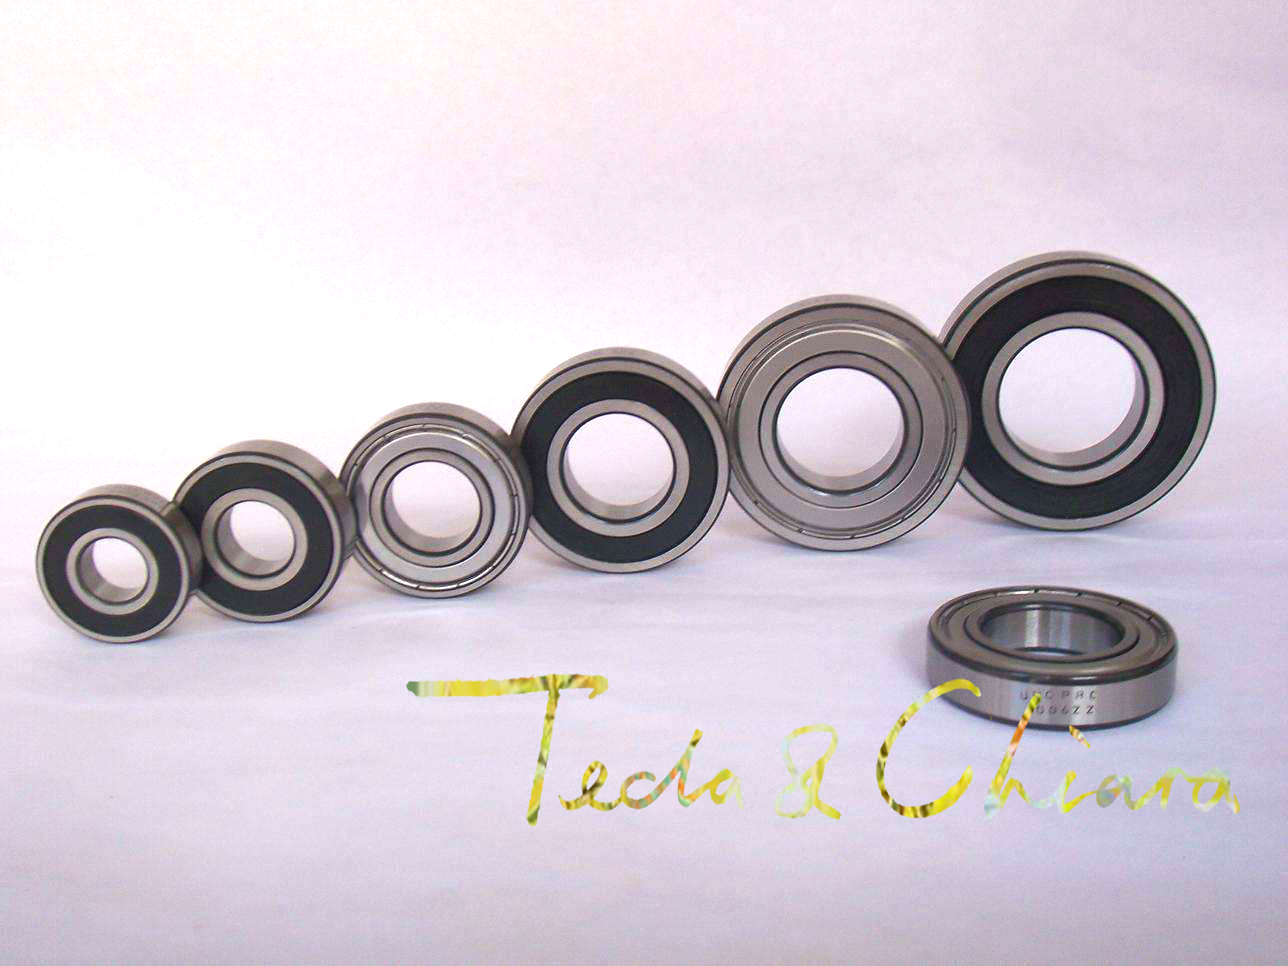 678RS 678ZZ MR128 MR128ZZ MR128RS MR128-2Z MR128-2RS 678 ZZ RS RZ 2RZ Deep Groove Ball Bearings 8 x 12 x 3.5mm High Quality 604 604zz 604rs 604 2z 604z 604 2rs zz rs rz 2rz deep groove ball bearings 4 x 12 x 4mm high quality